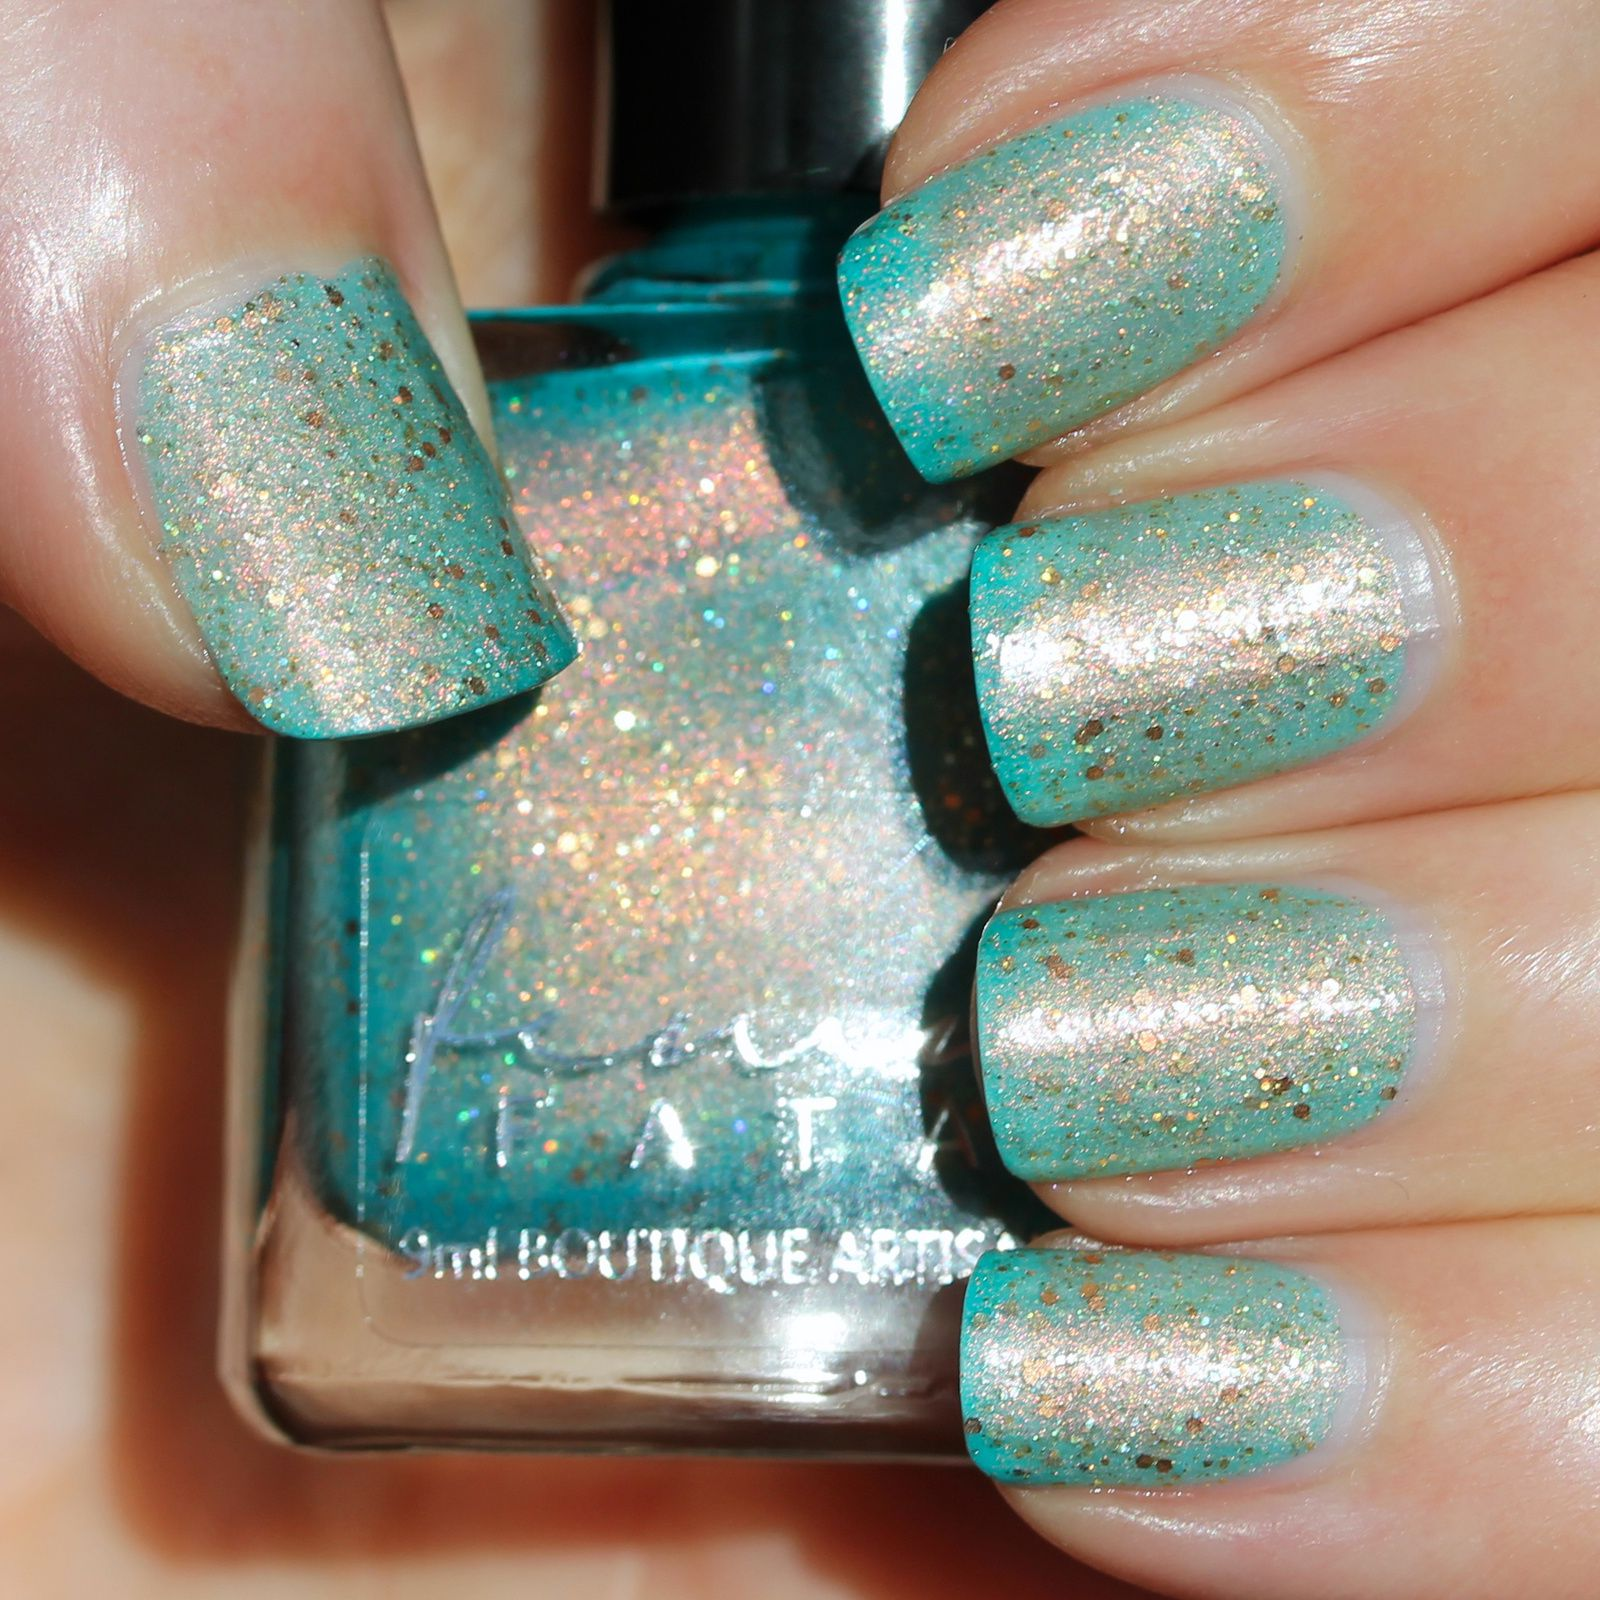 Femme Fatale Cosmetics - A Fortune Teller's Charm (2 coats, no top coat)